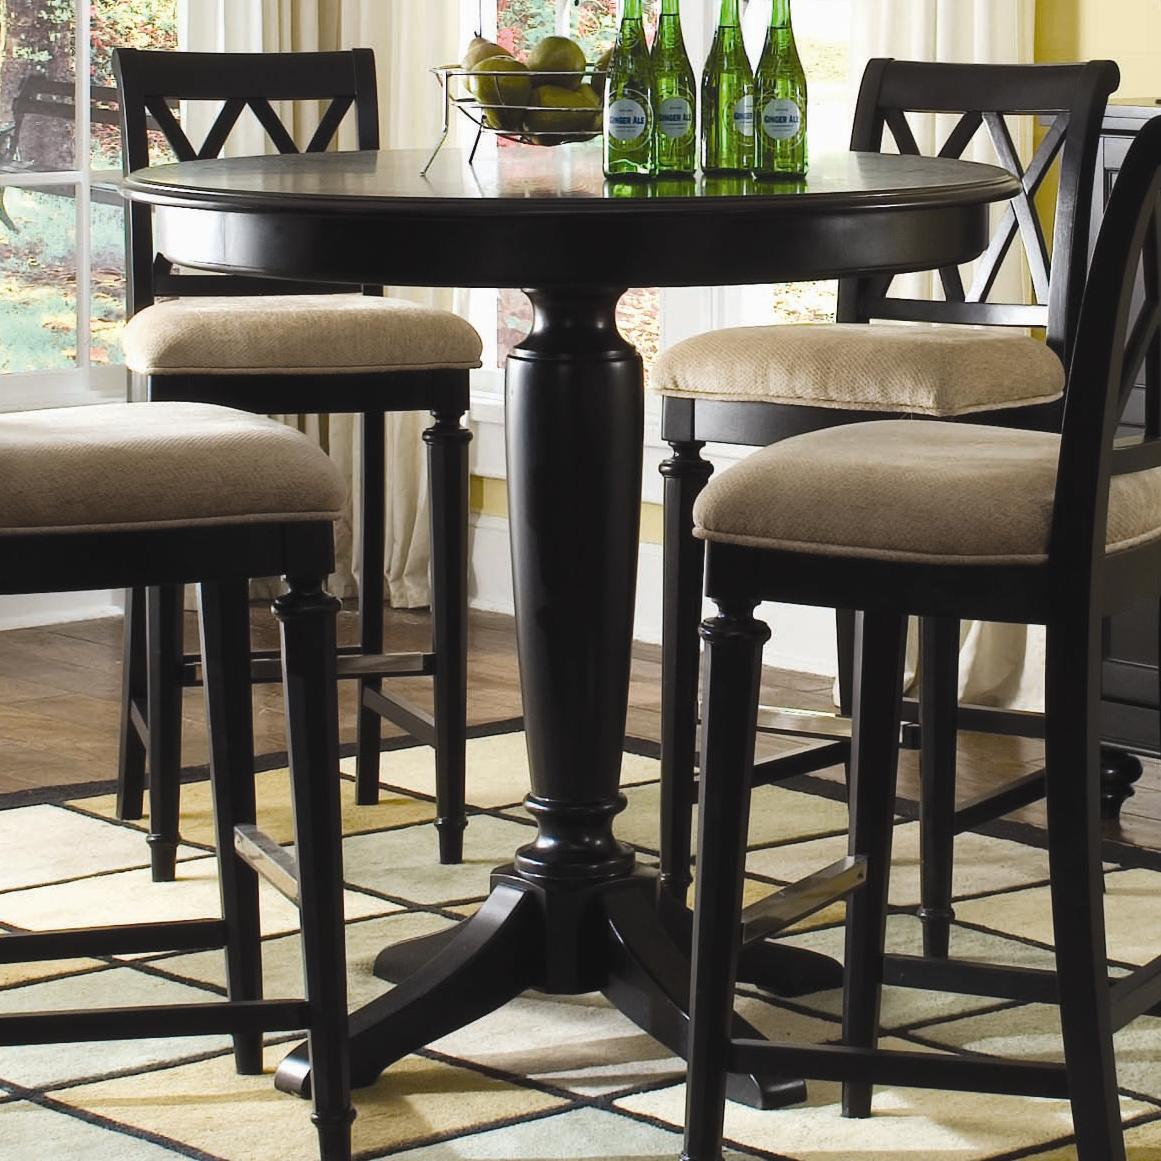 42 round bar height table - Kitchen Table With Bar Stools